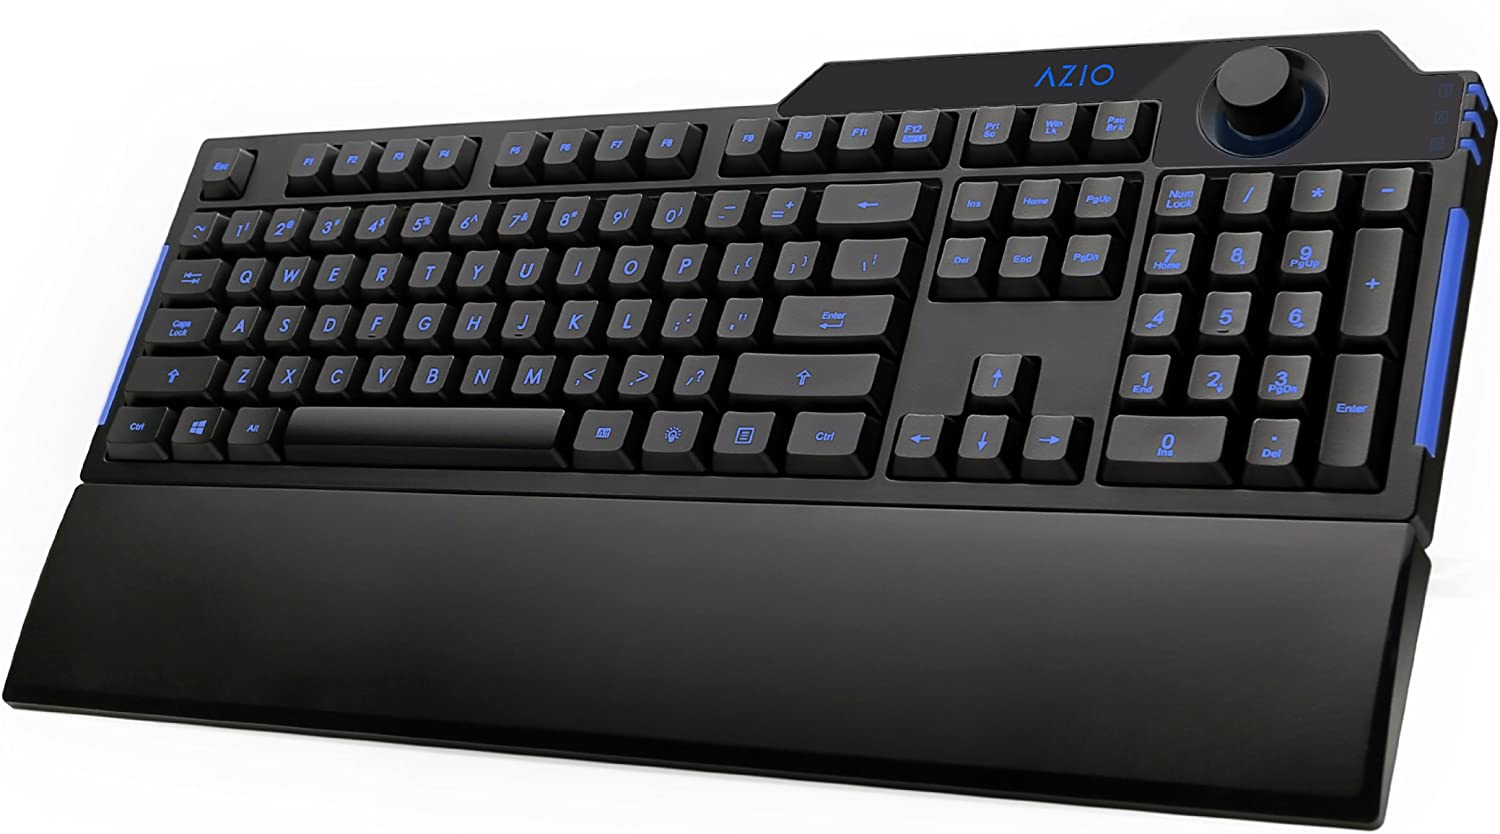 Azio Levetron L70 LED Backlit Gaming Keyboard KB501 Black